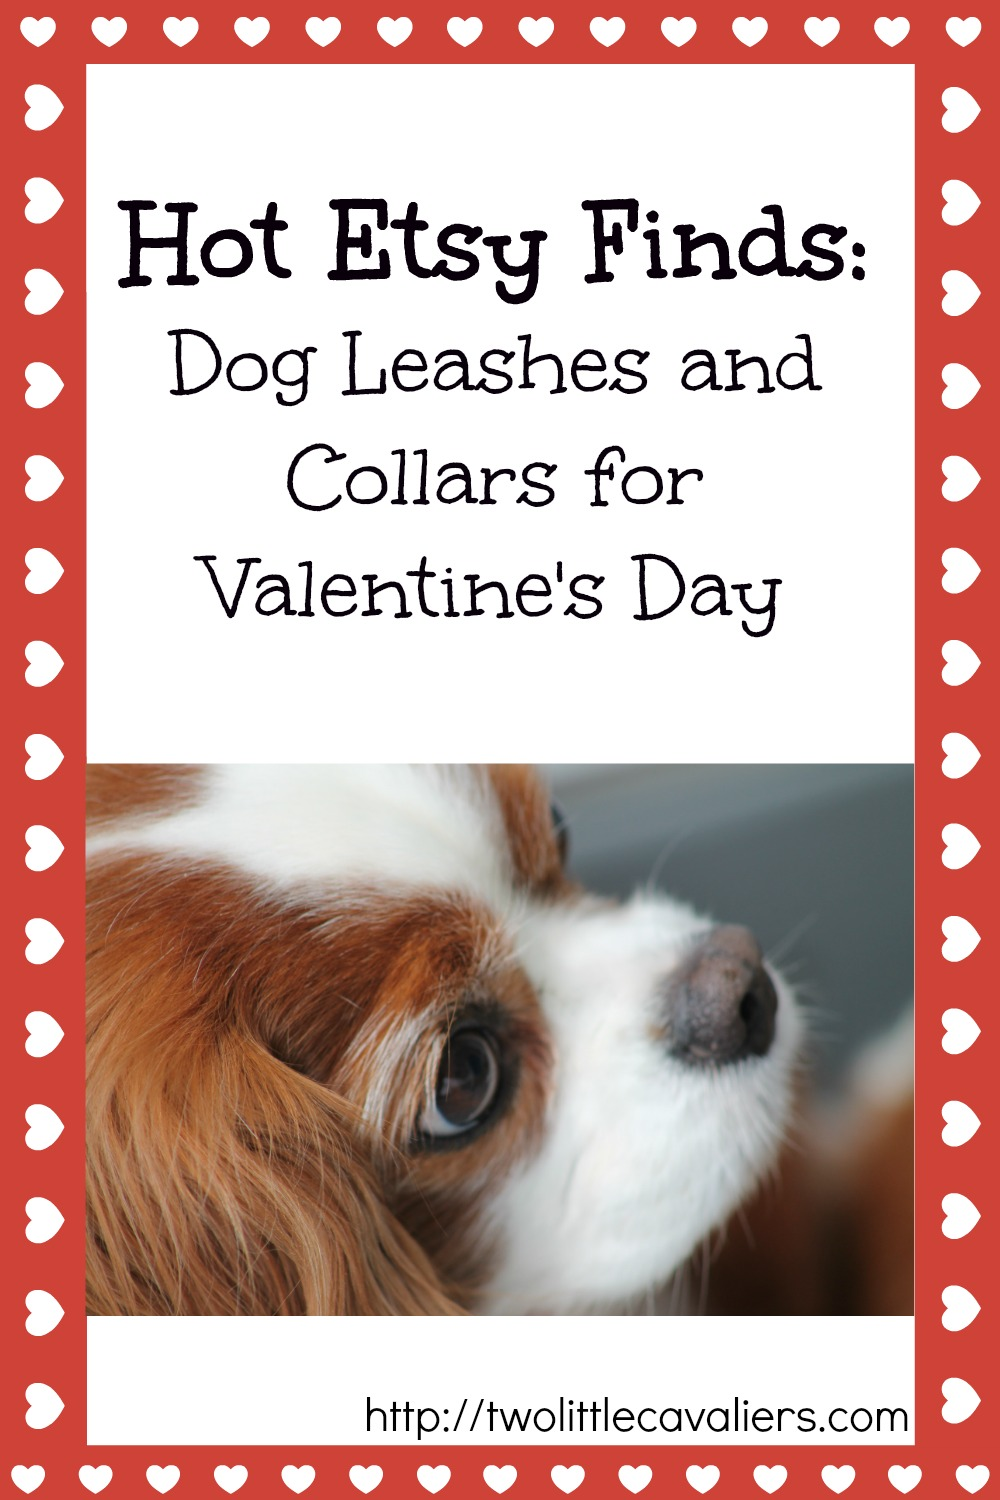 Hot Etsy Finds Dog Leashes and Collars for Valentines Day